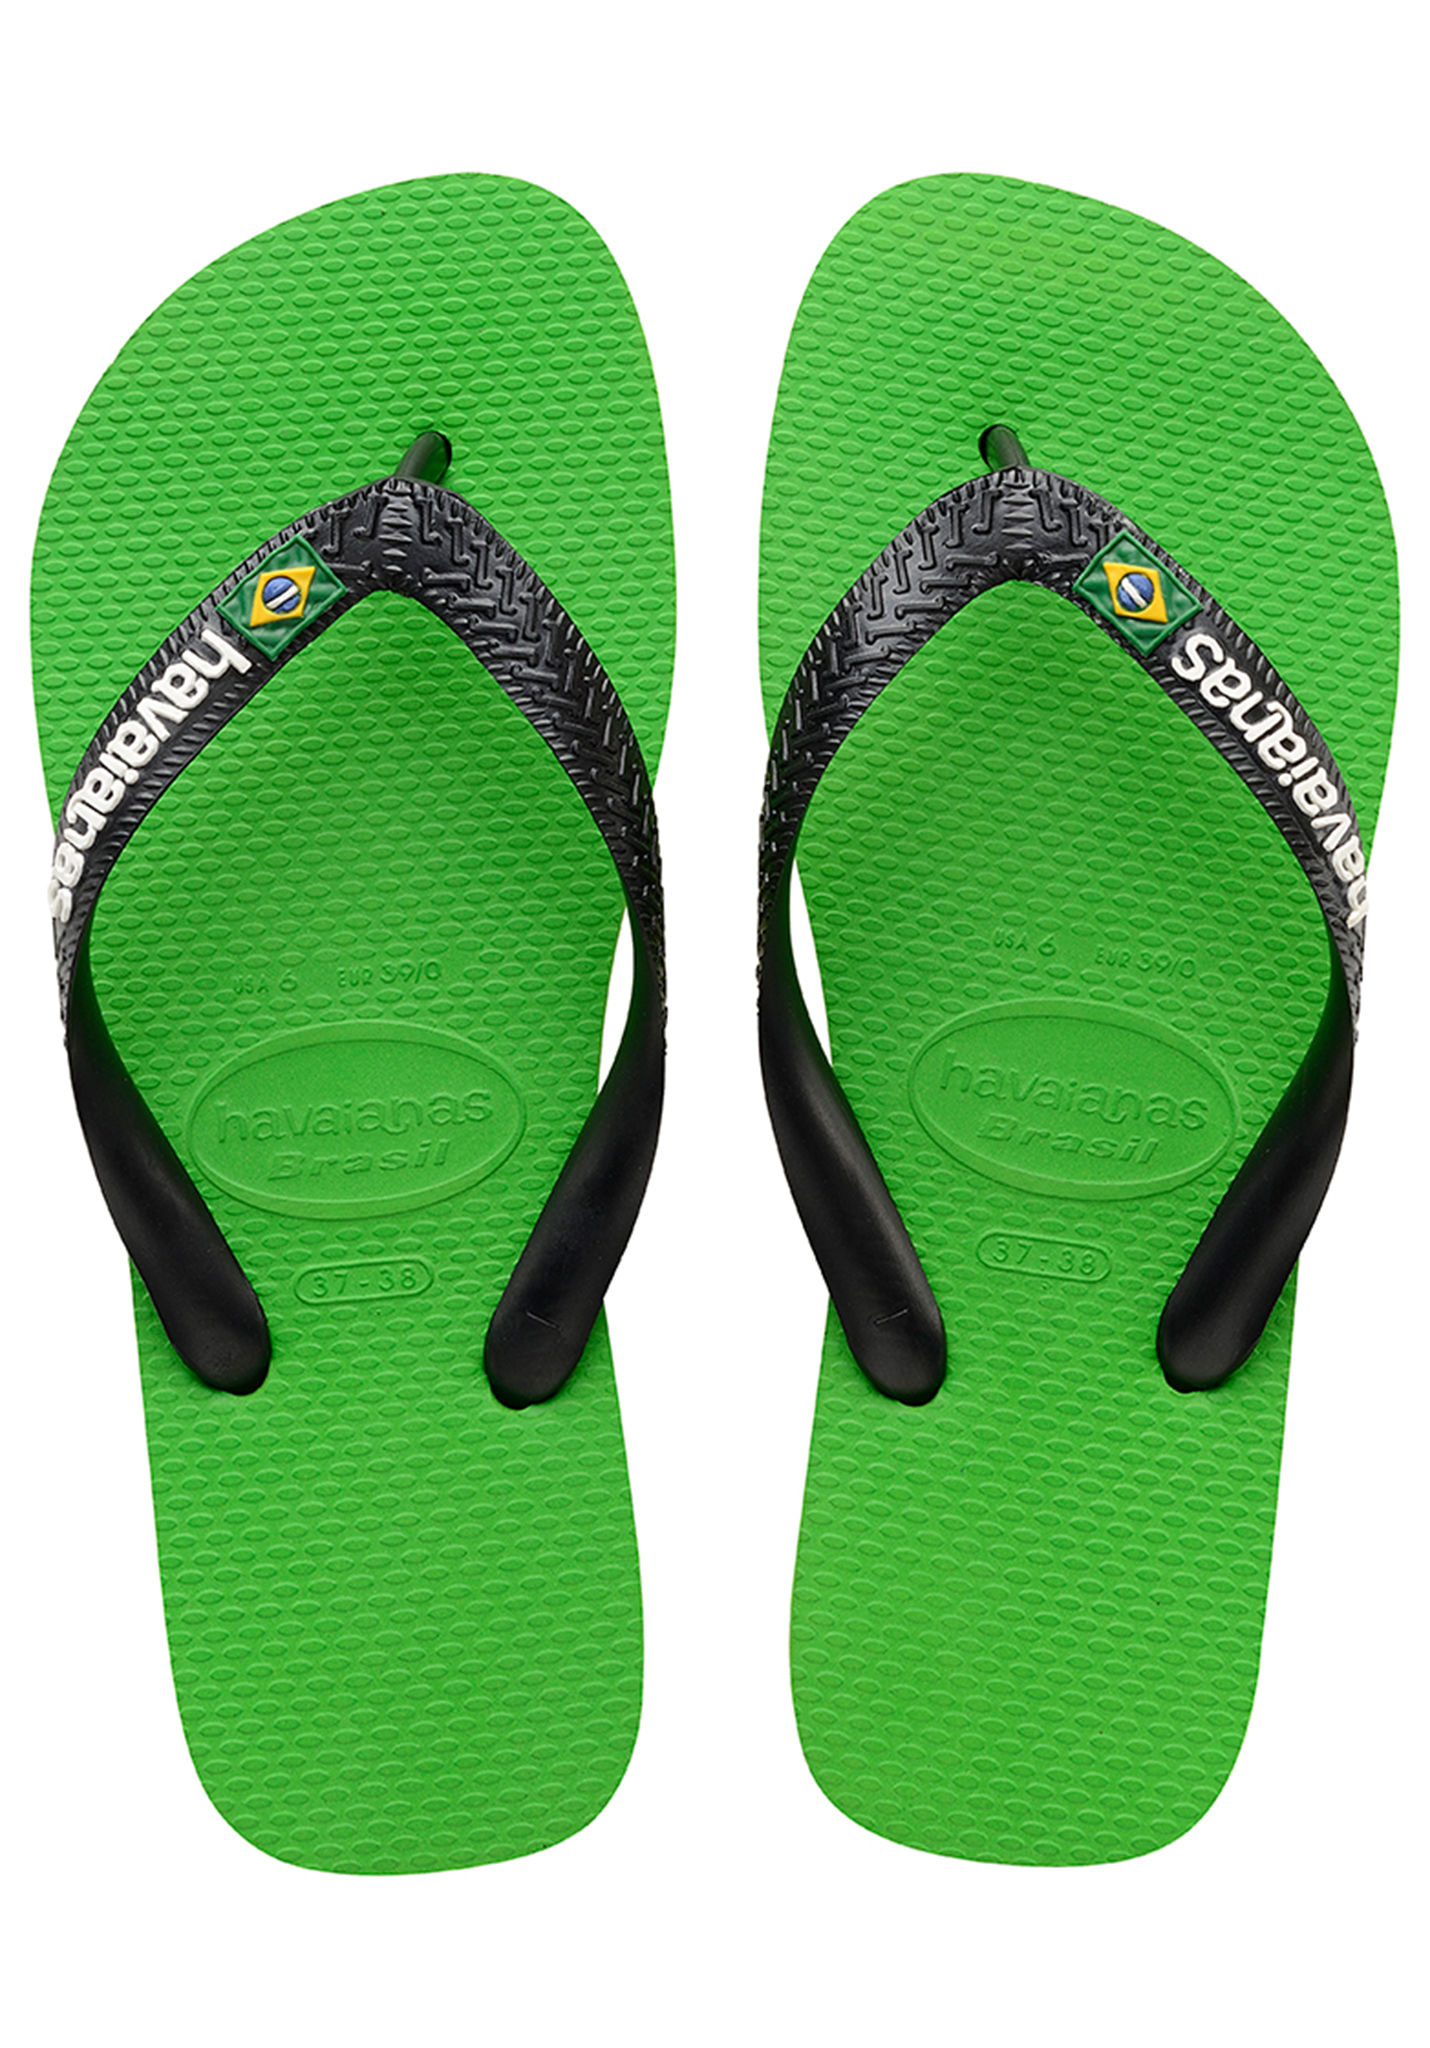 73aa5ad6a1b9d1 HAVAIANAS Brasil Logo - Sandals - Green - Planet Sports